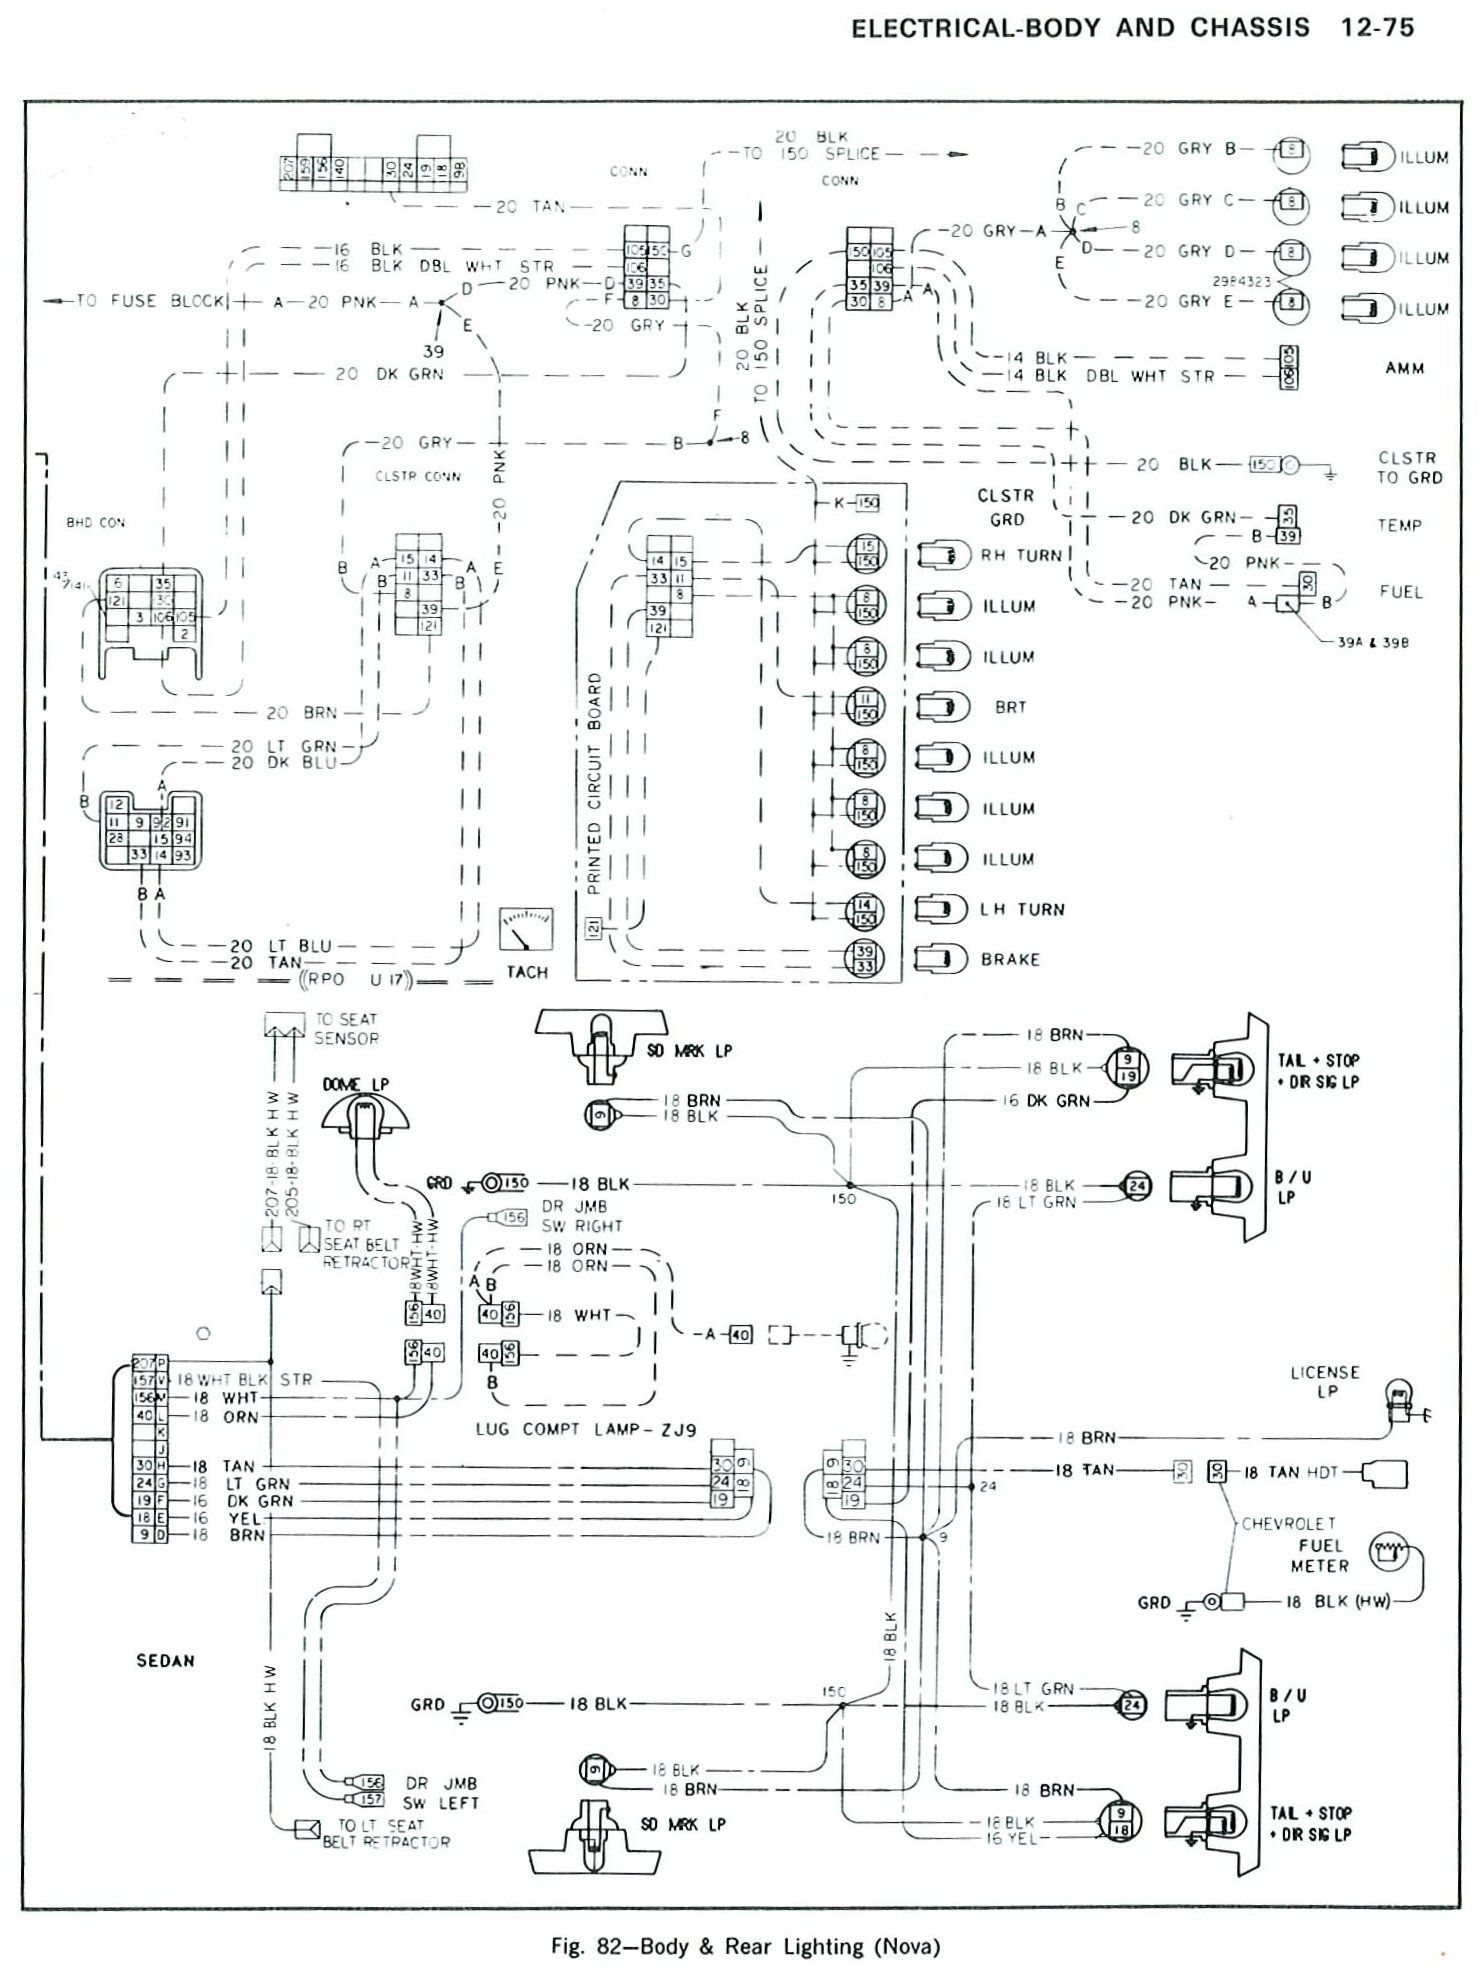 85 Chevy Truck Wiring Diagram | ... looking at the wiring diagram ...